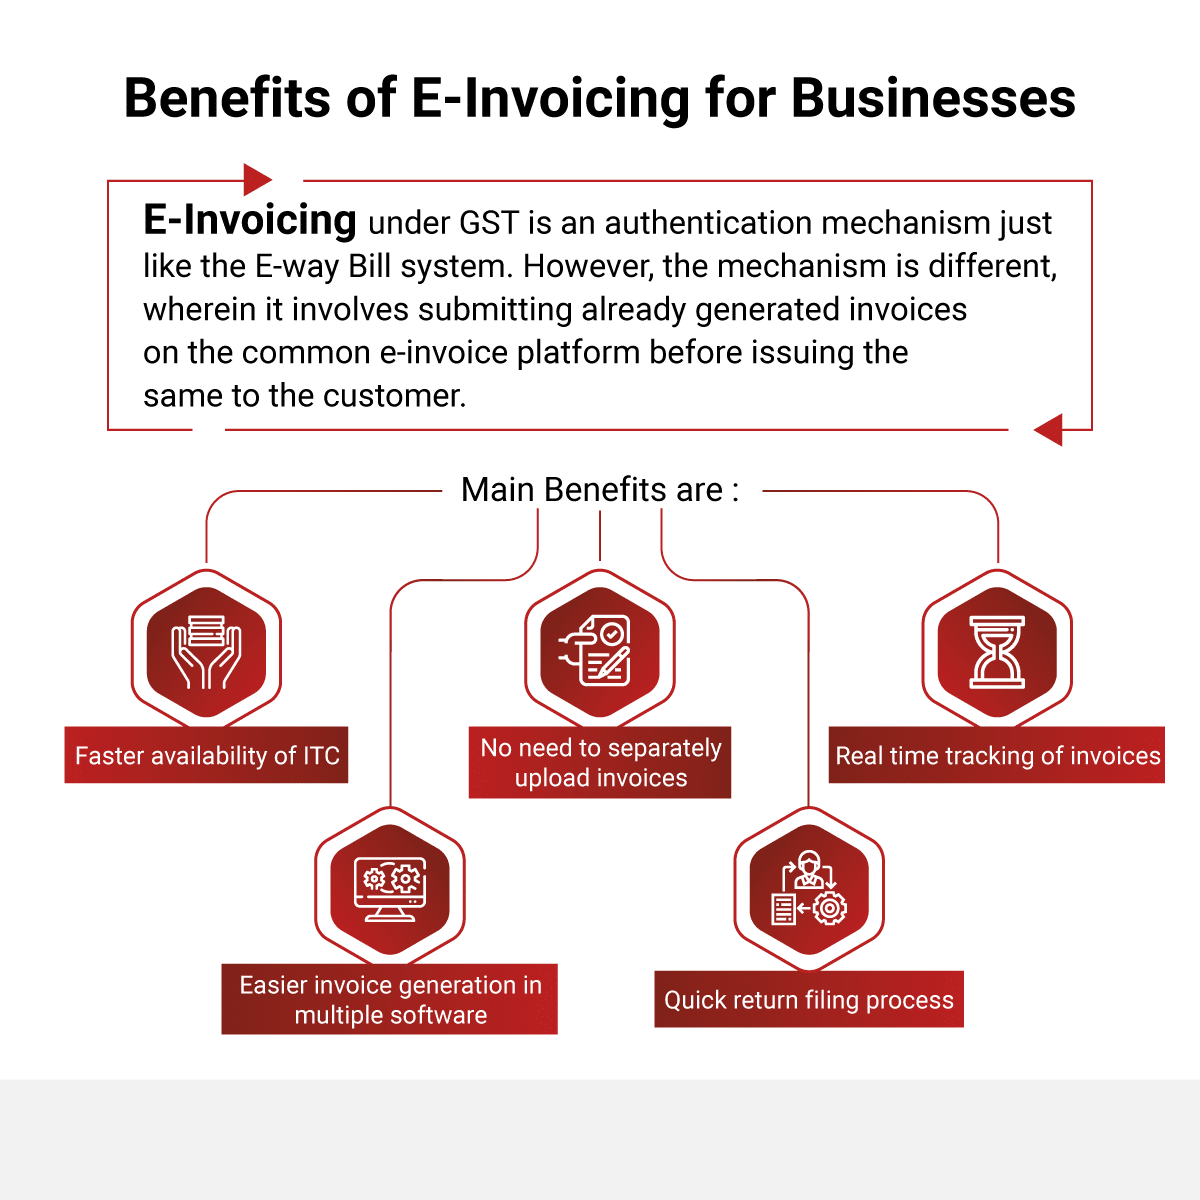 What are the benefits of E-Invoicing?